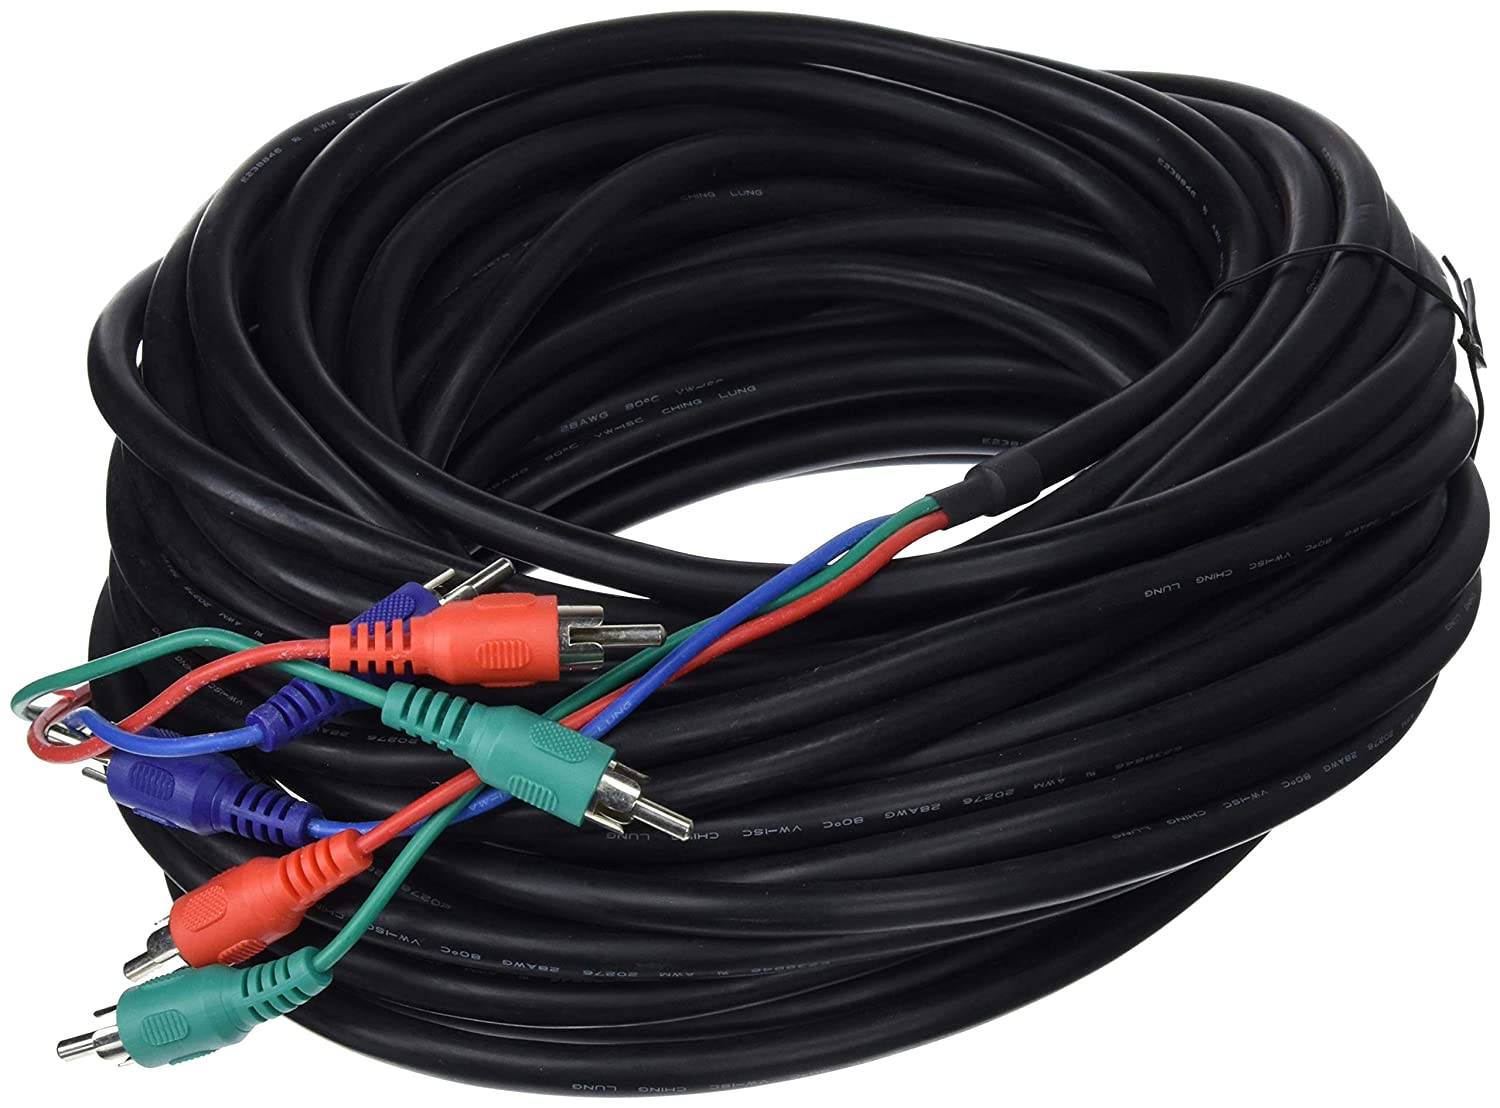 3xRCA RGB Video Cable (M/M) 15m Cablematic.com PN25021411404108287